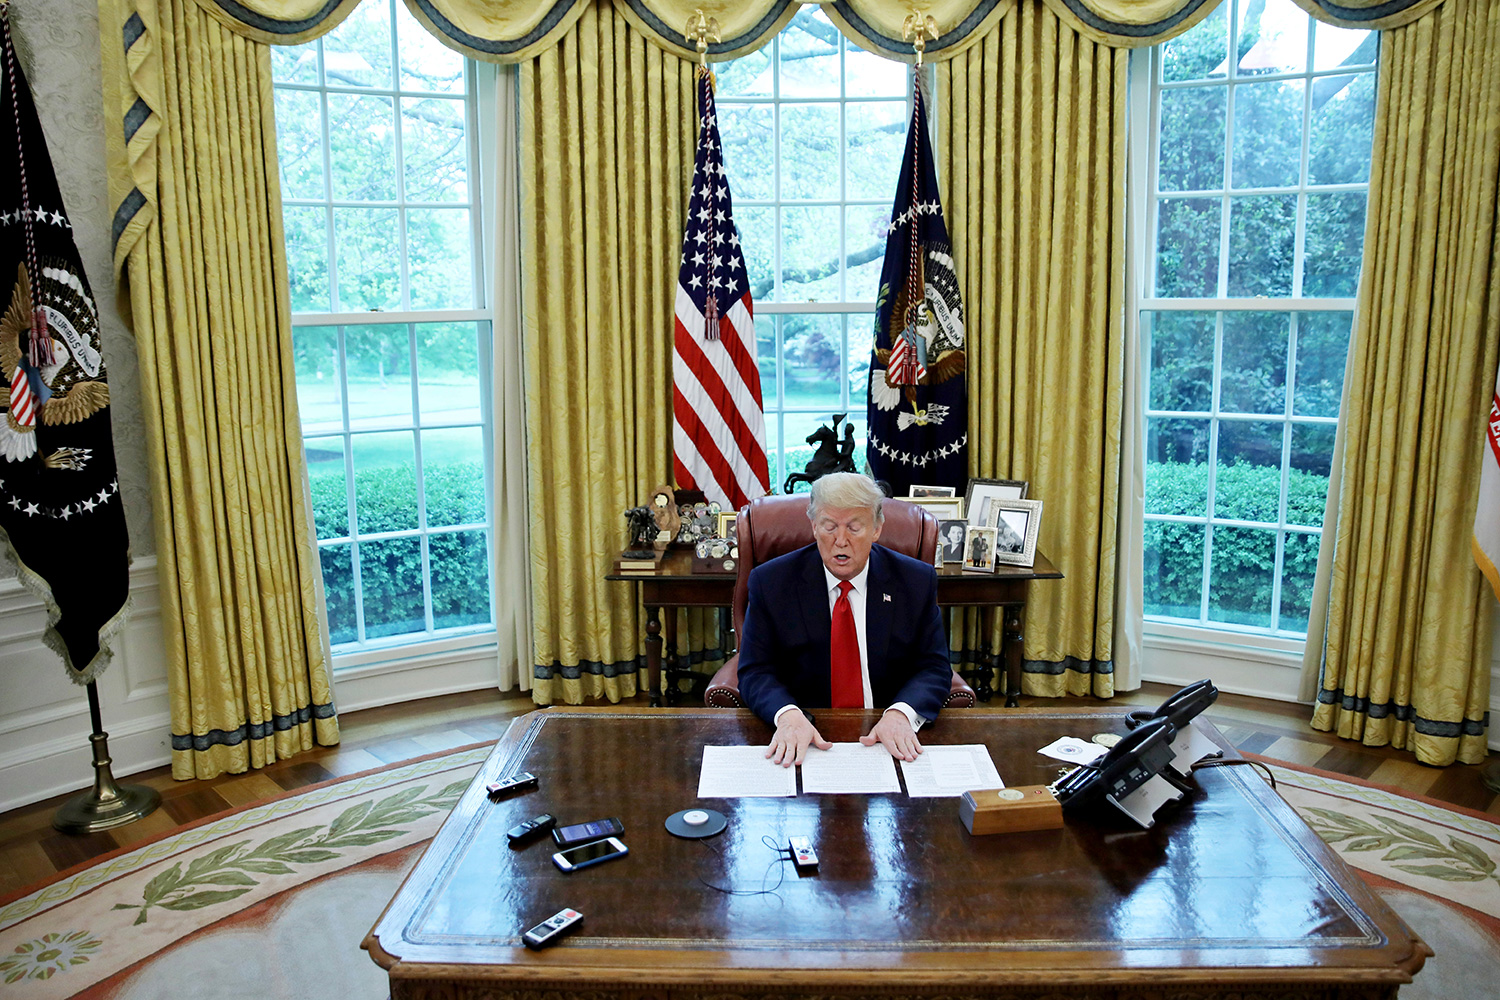 U.S. President Donald Trump looks at his briefing papers as he answers questions during an interview with Reuters about China, the coronavirus pandemic and other subjects on April 29, 2020. The photo shows the president at his desk in the Oval Office. REUTERS/Carlos Barria